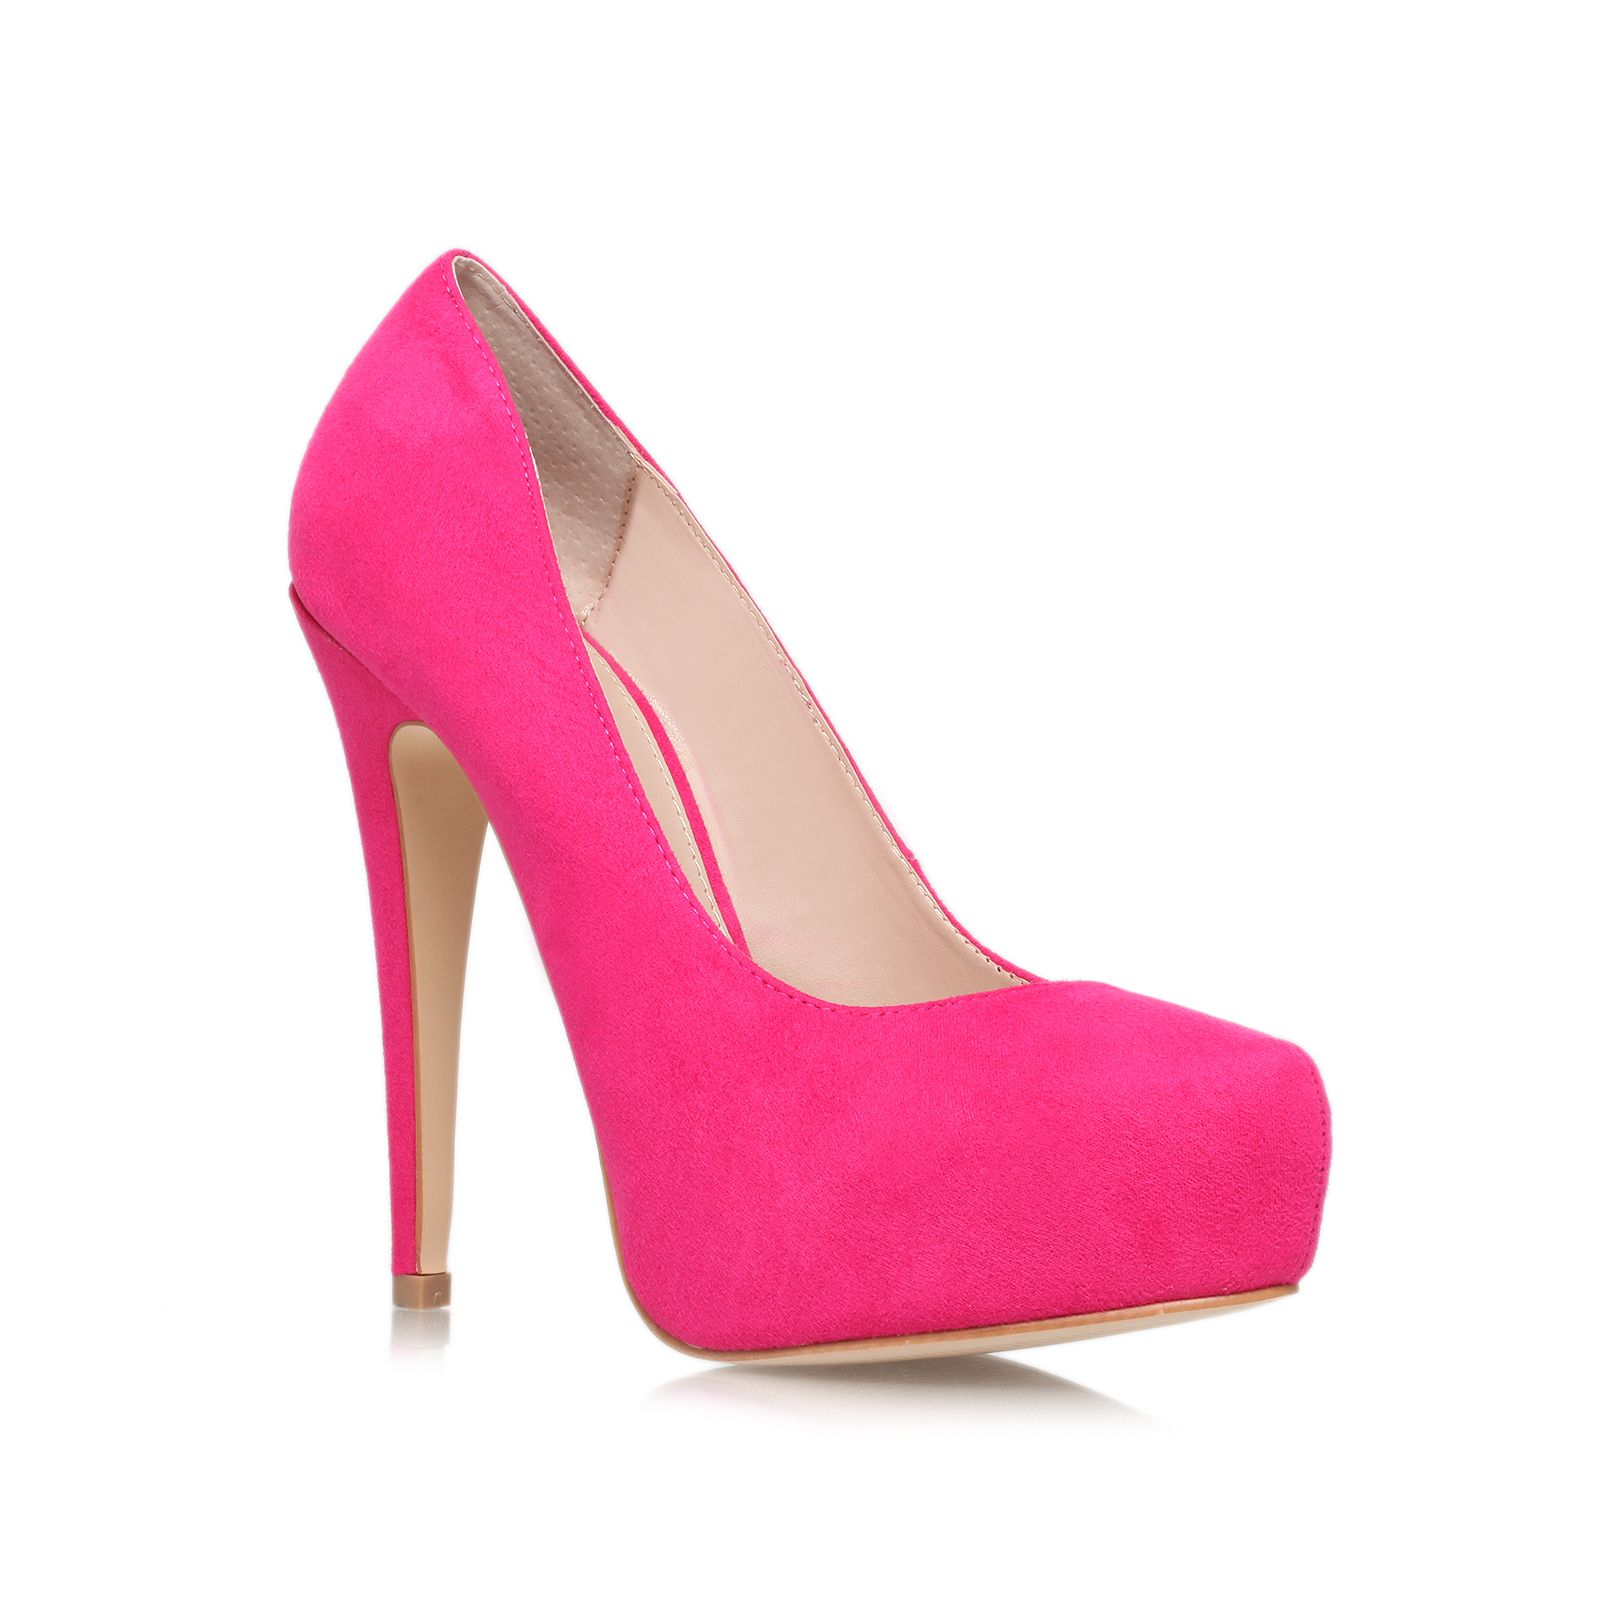 carvela kurt geiger kaci high heel court shoes in pink lyst. Black Bedroom Furniture Sets. Home Design Ideas